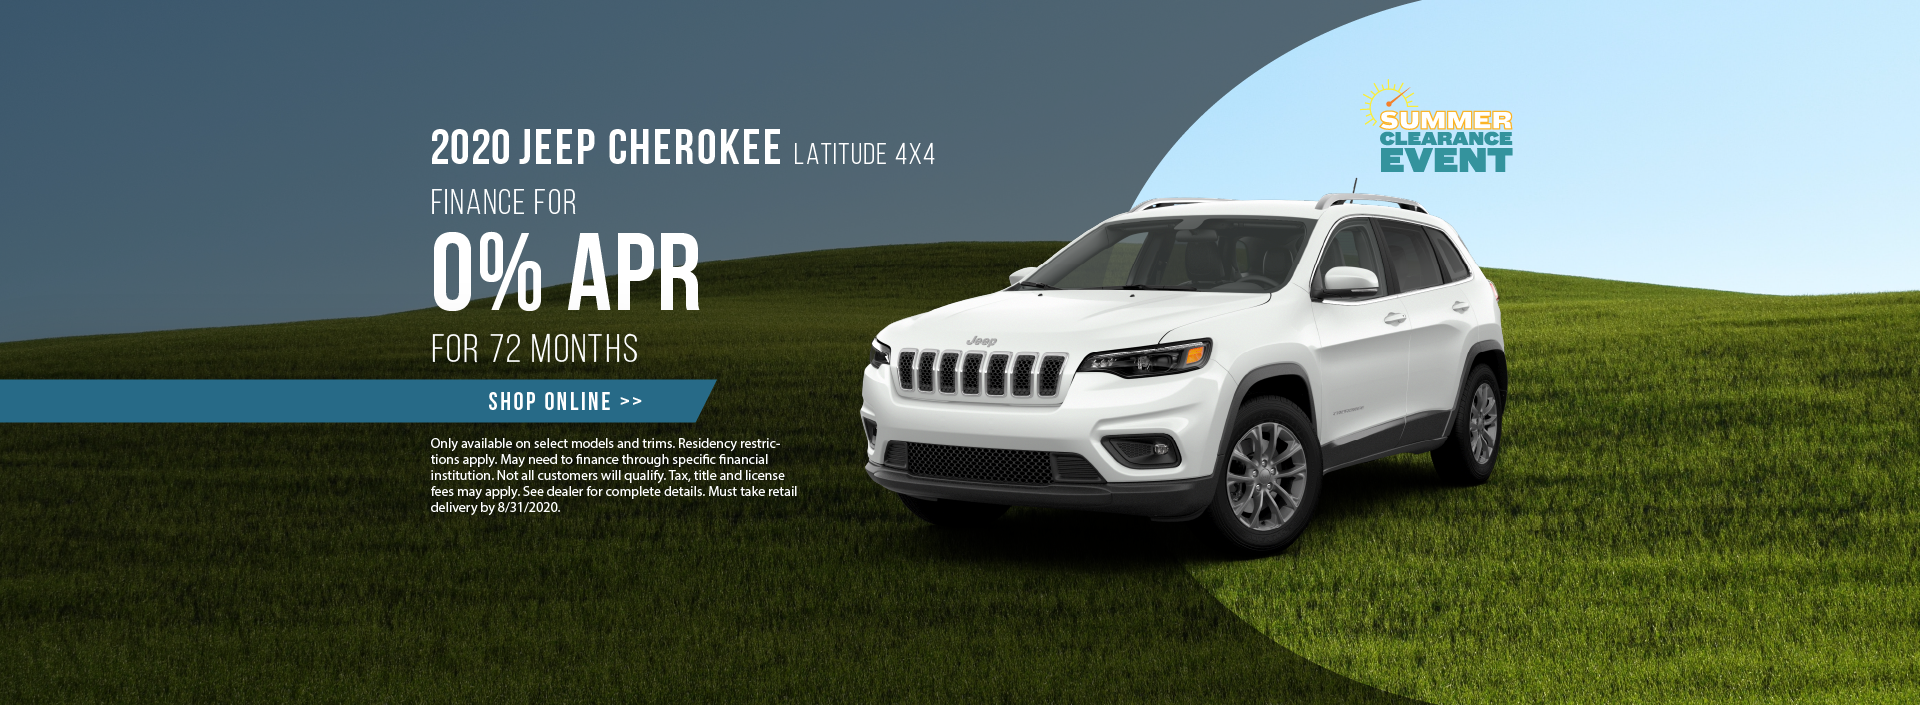 2020 Jeep Cherokee Offer